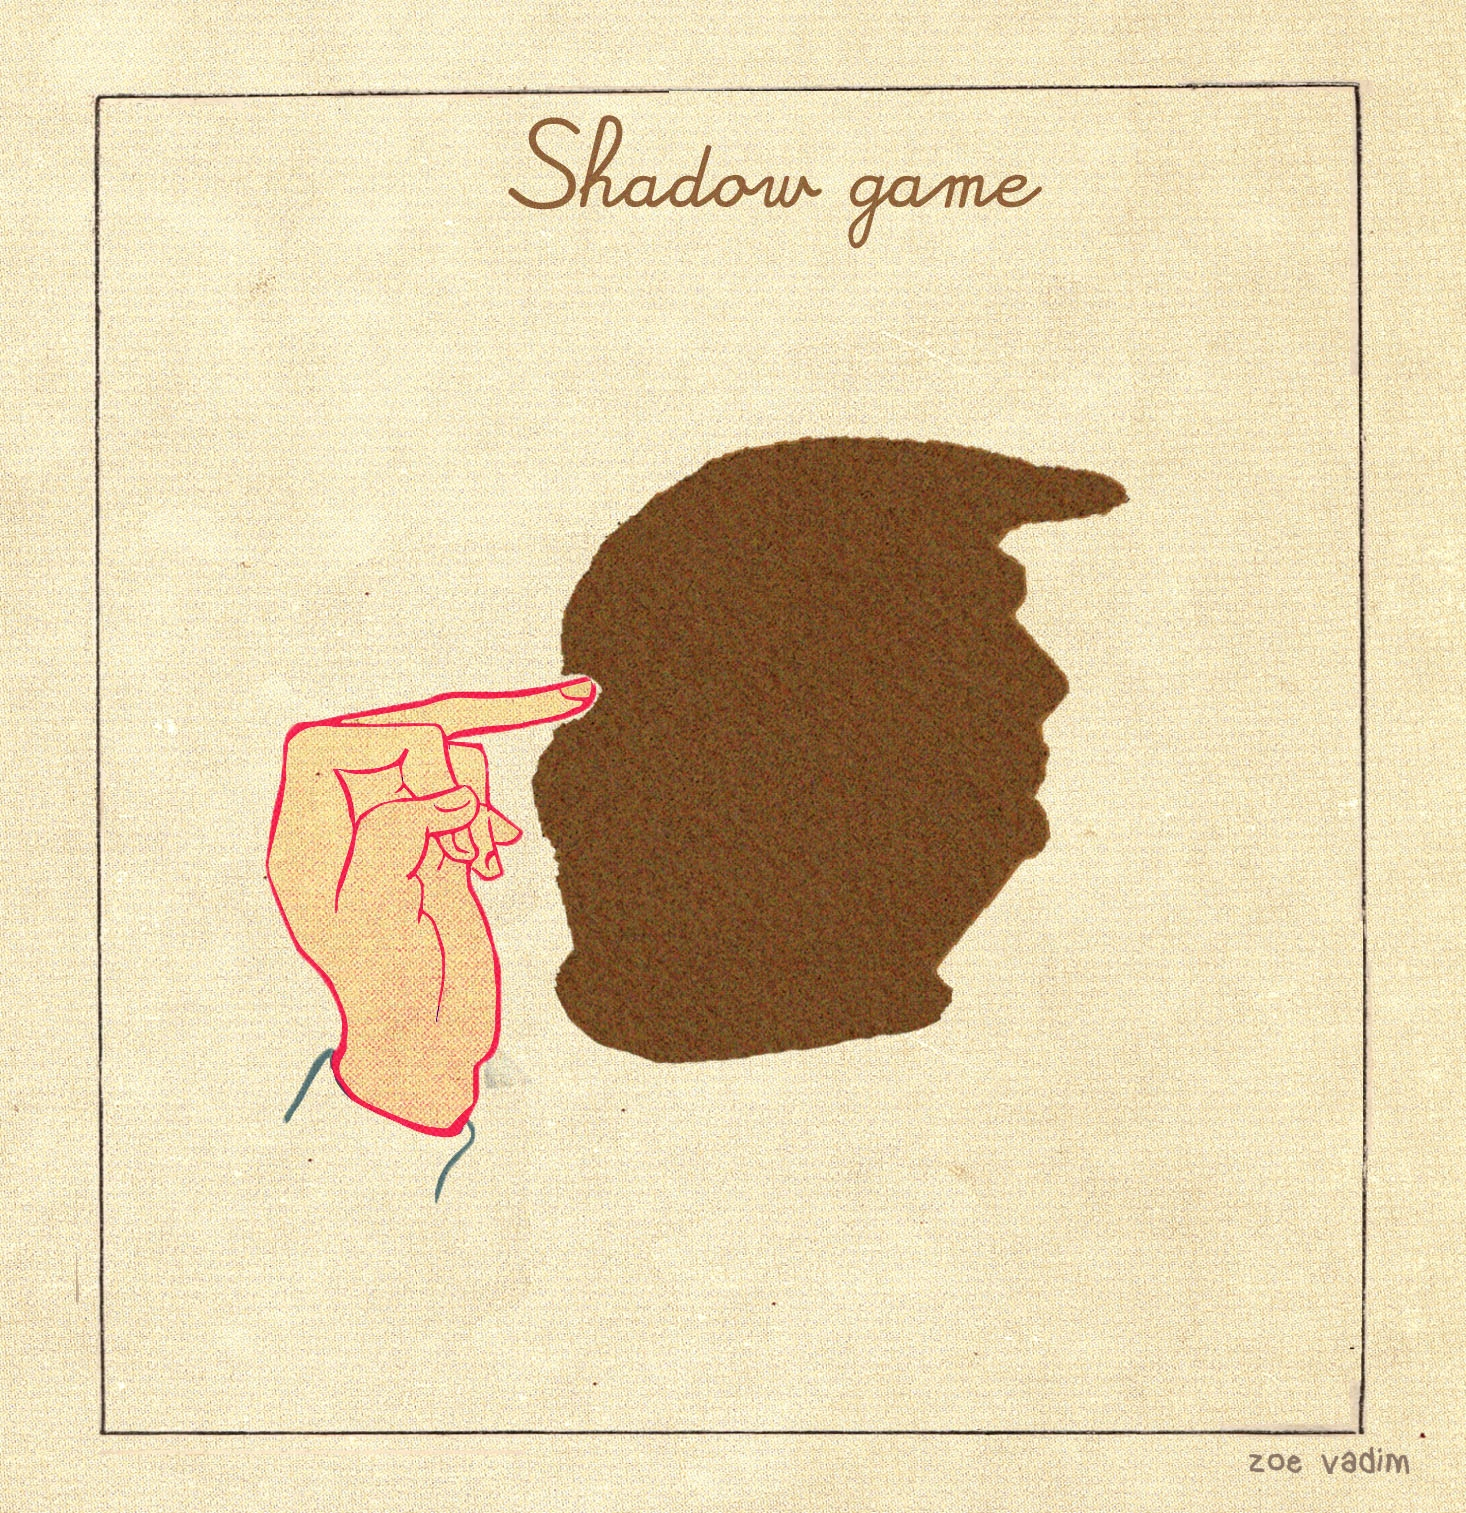 shadow game trumpinvestiture tr - zoe_vadim | ello